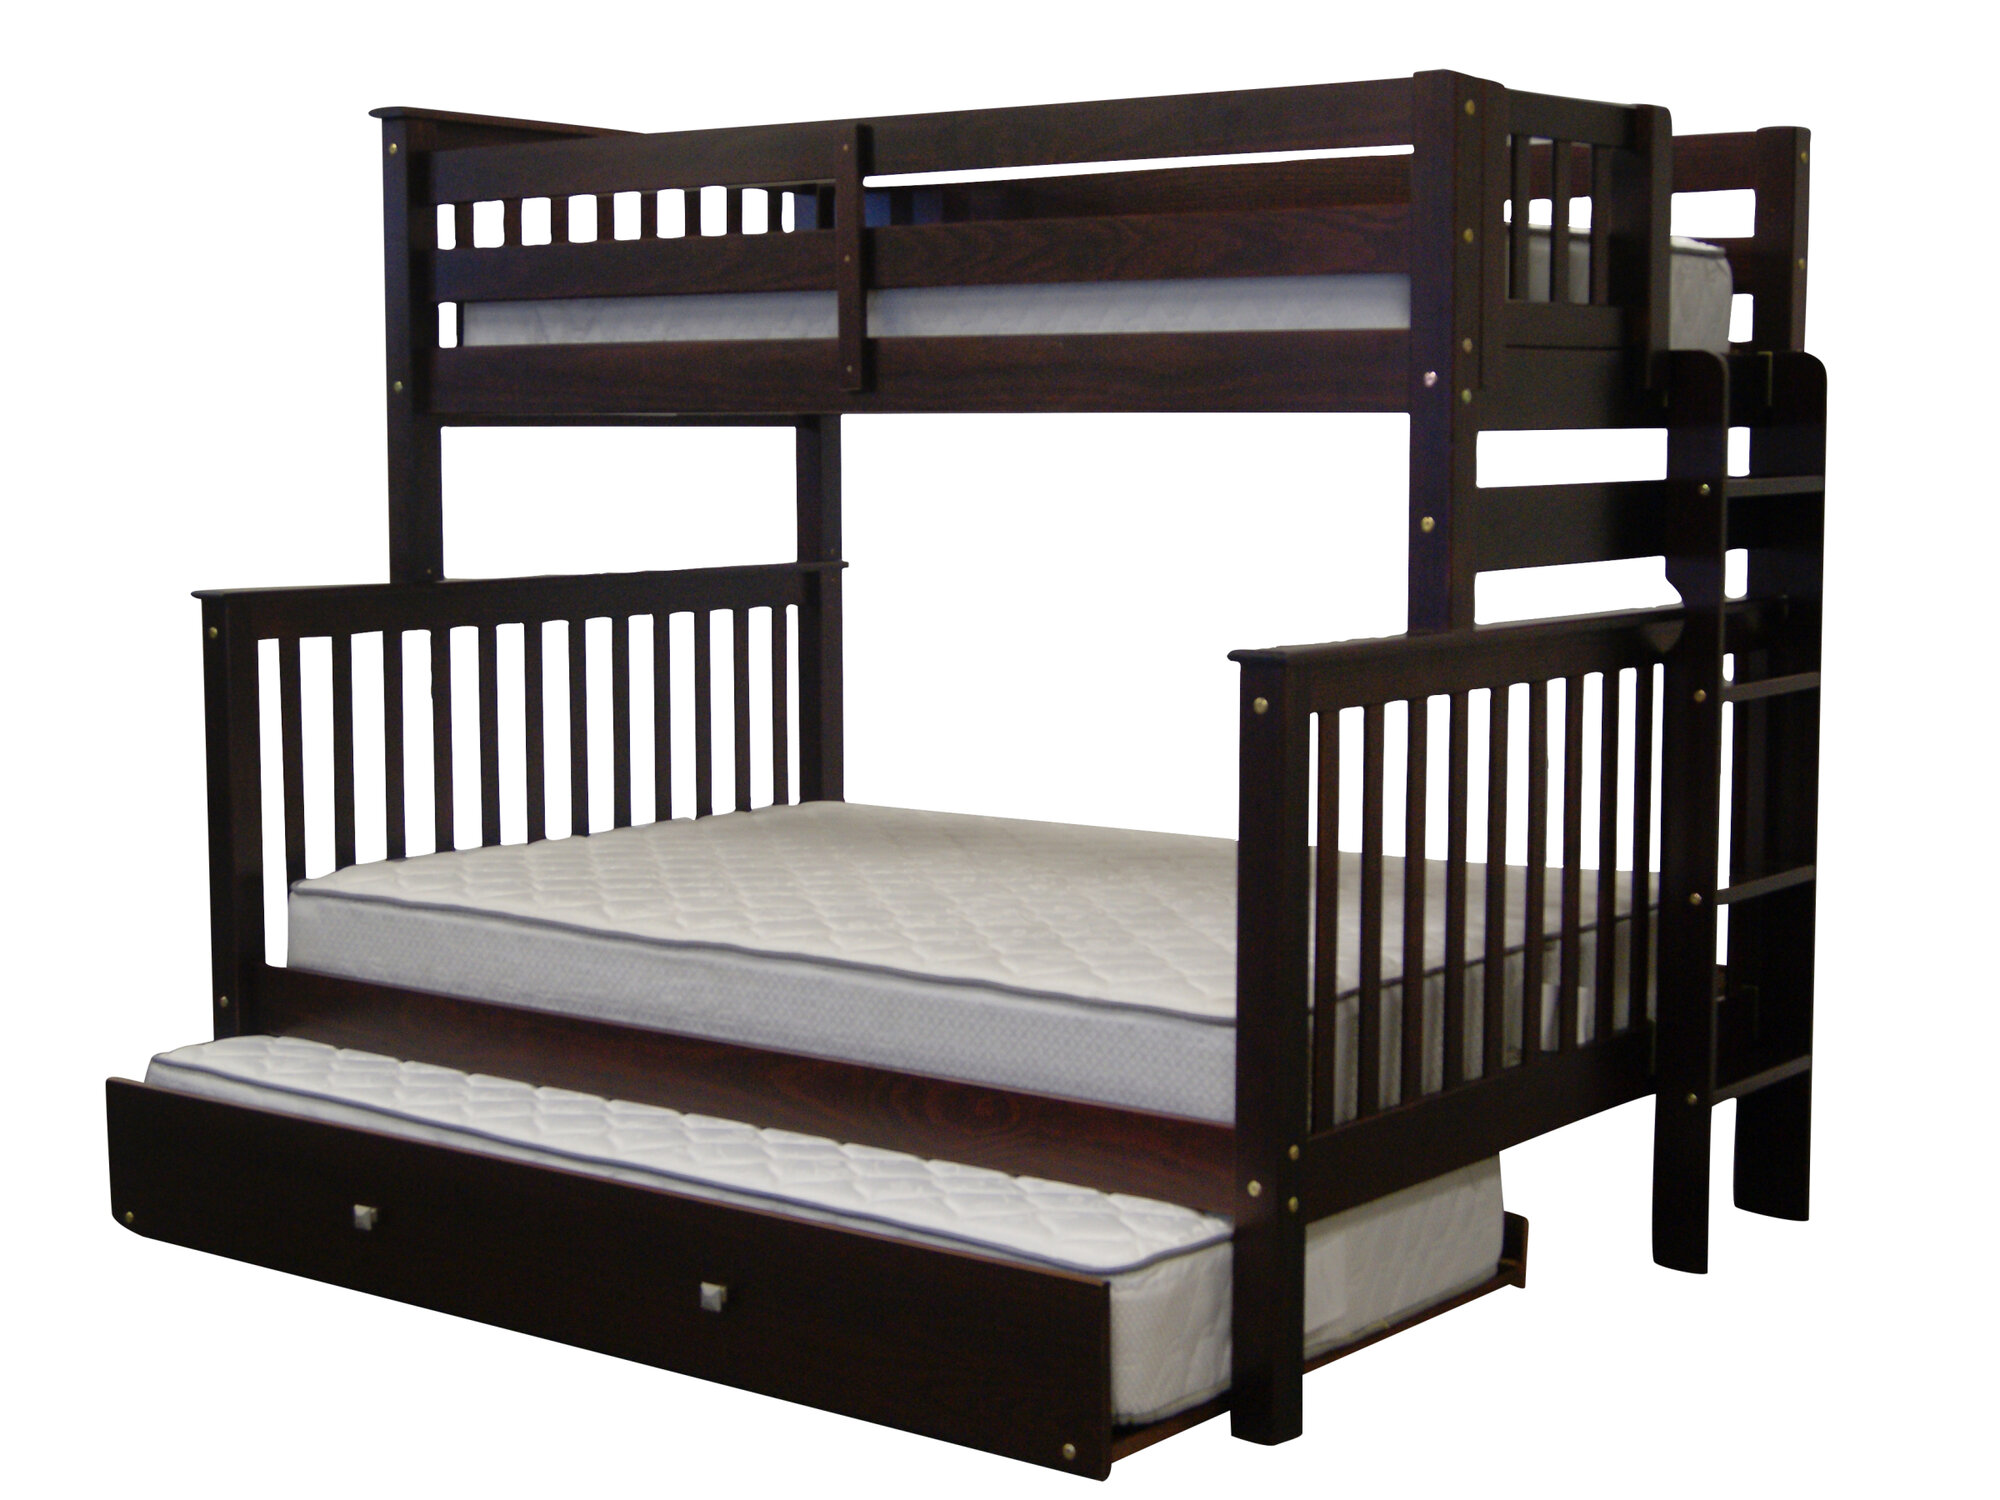 Bedz King Mission Twin Over Full Bunk Bed With Trundle EBay